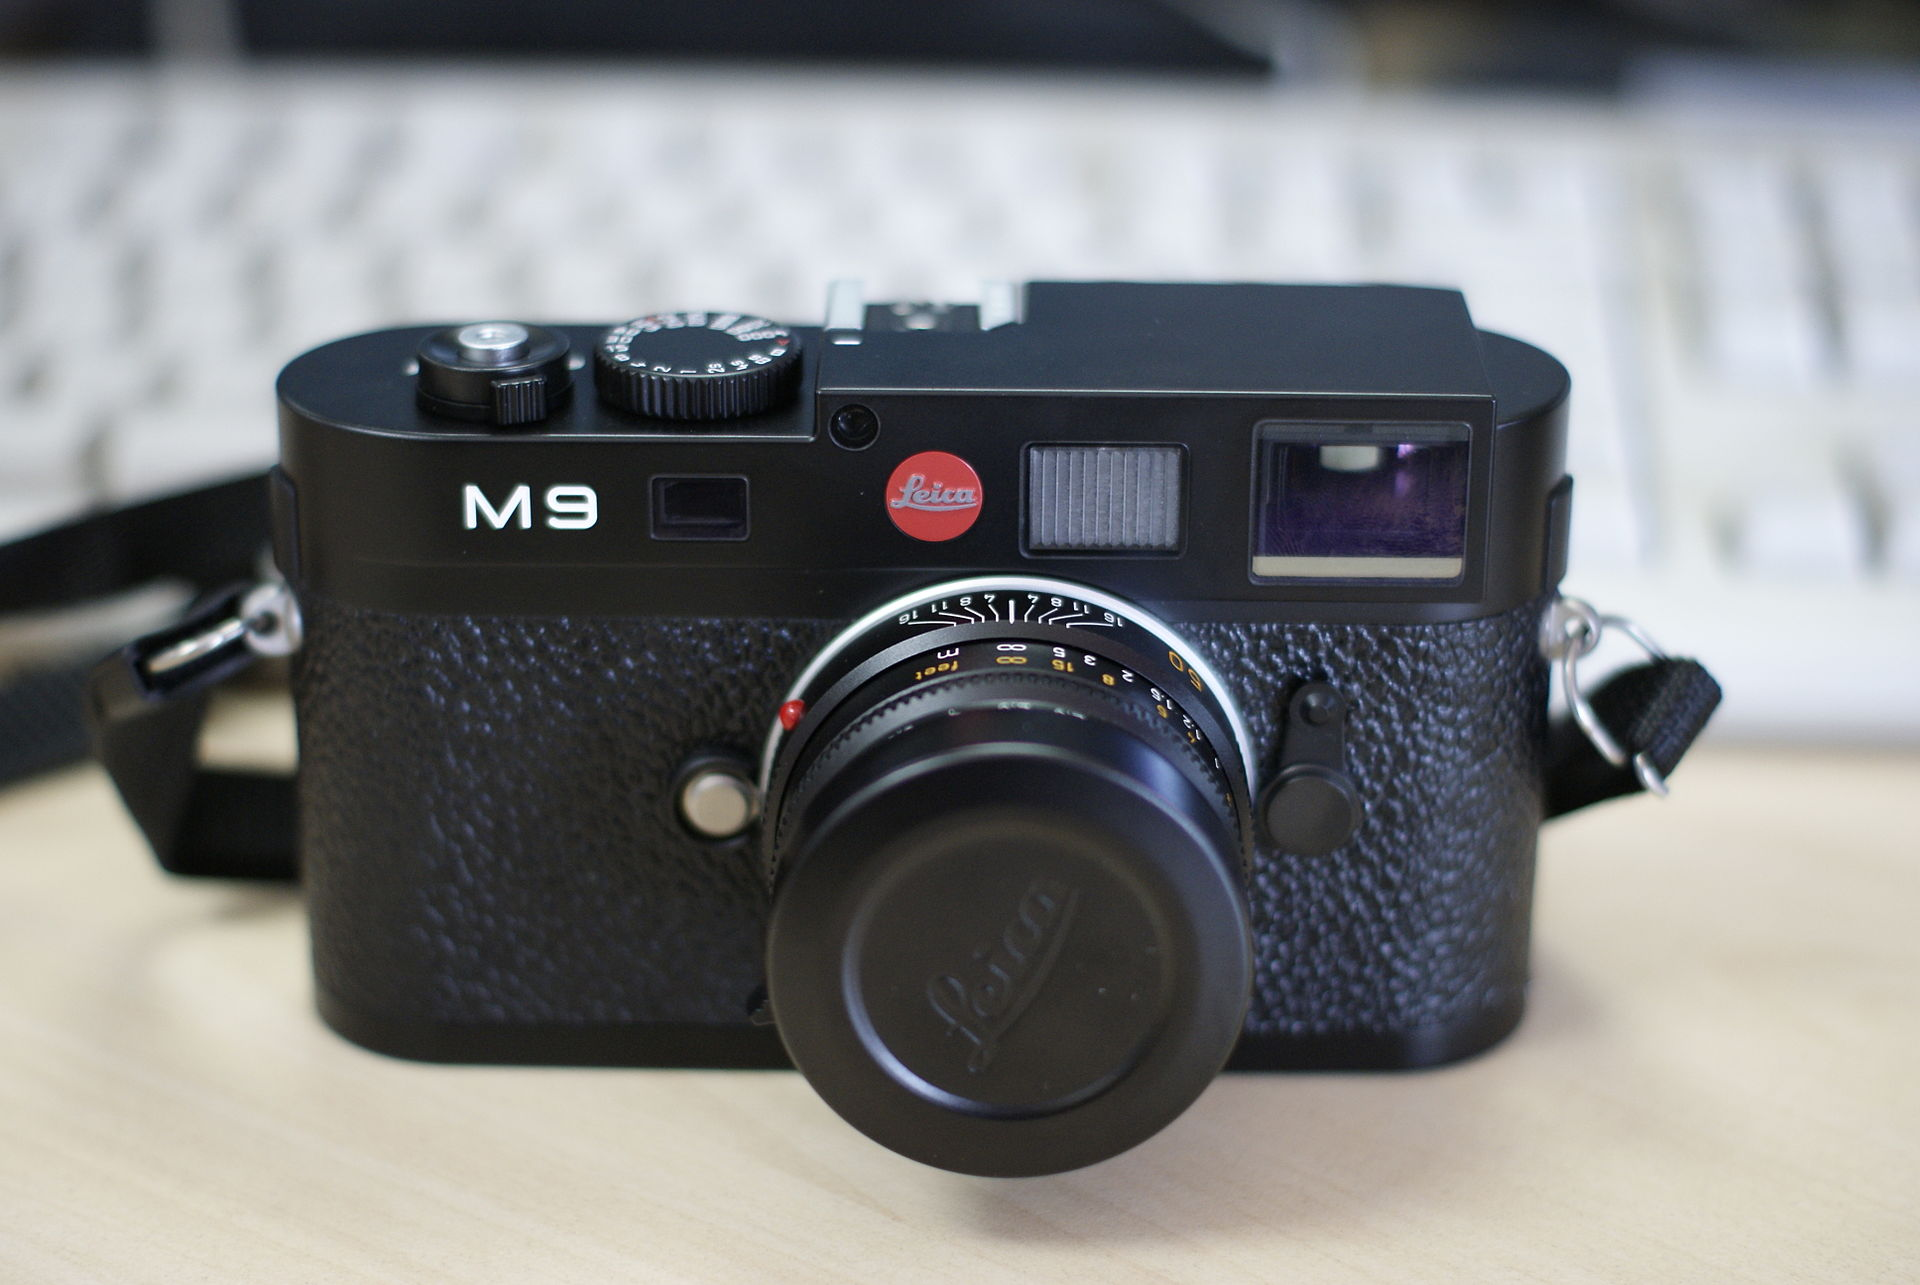 Lithium Ion Battery >> Leica M9 - Wikipedia